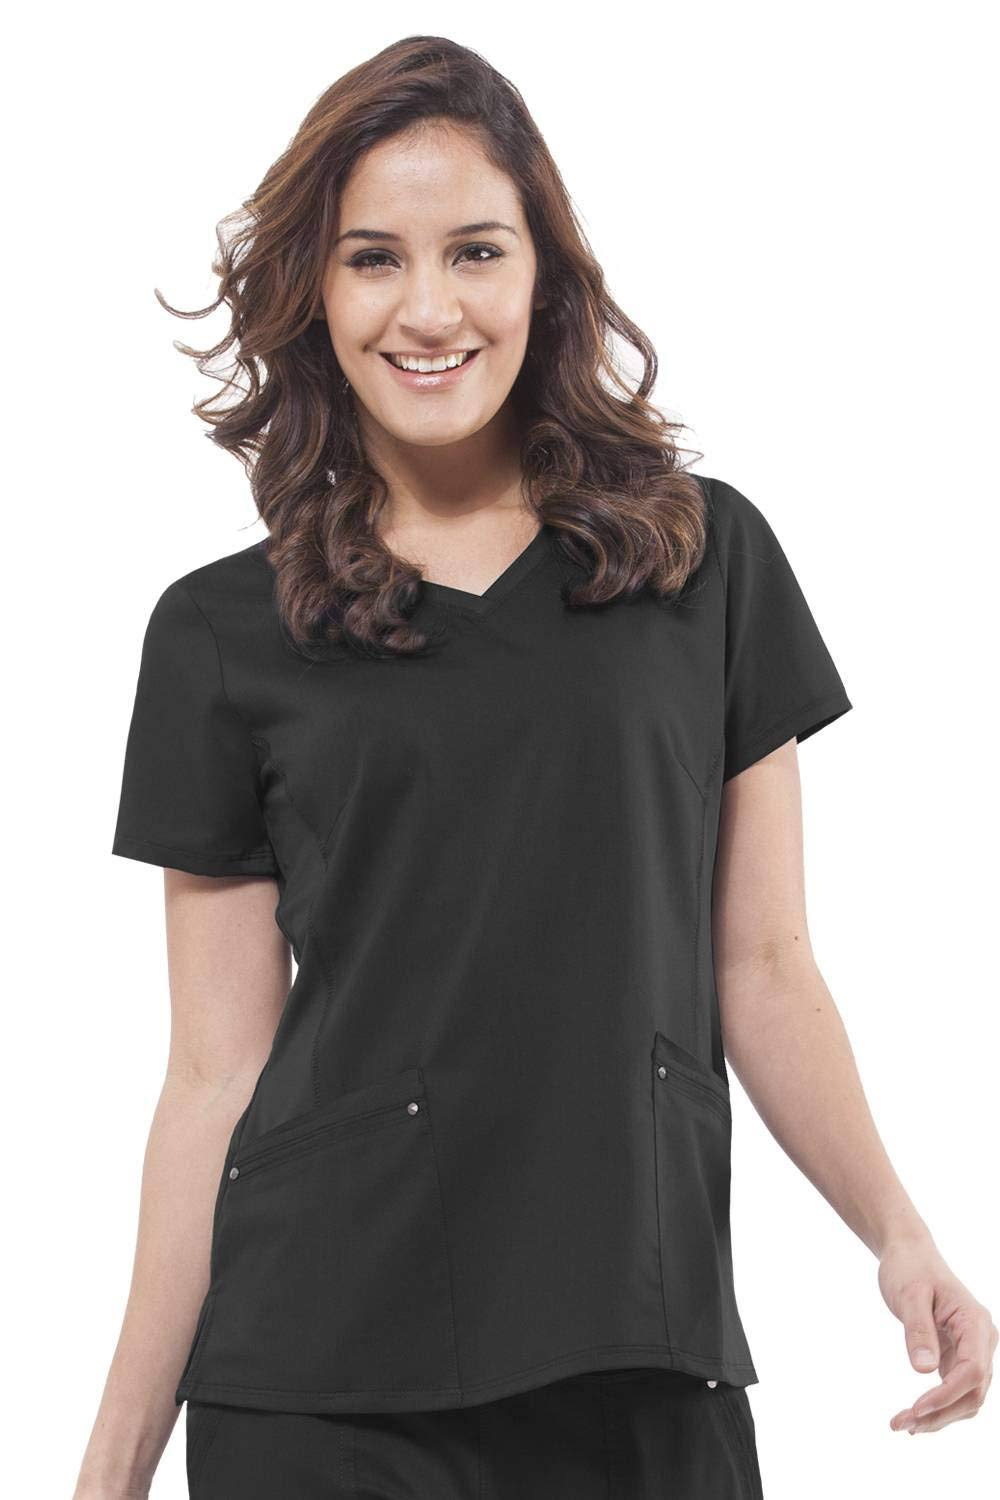 Healing Hands Purple Label 2245 Juliet Scrub Top